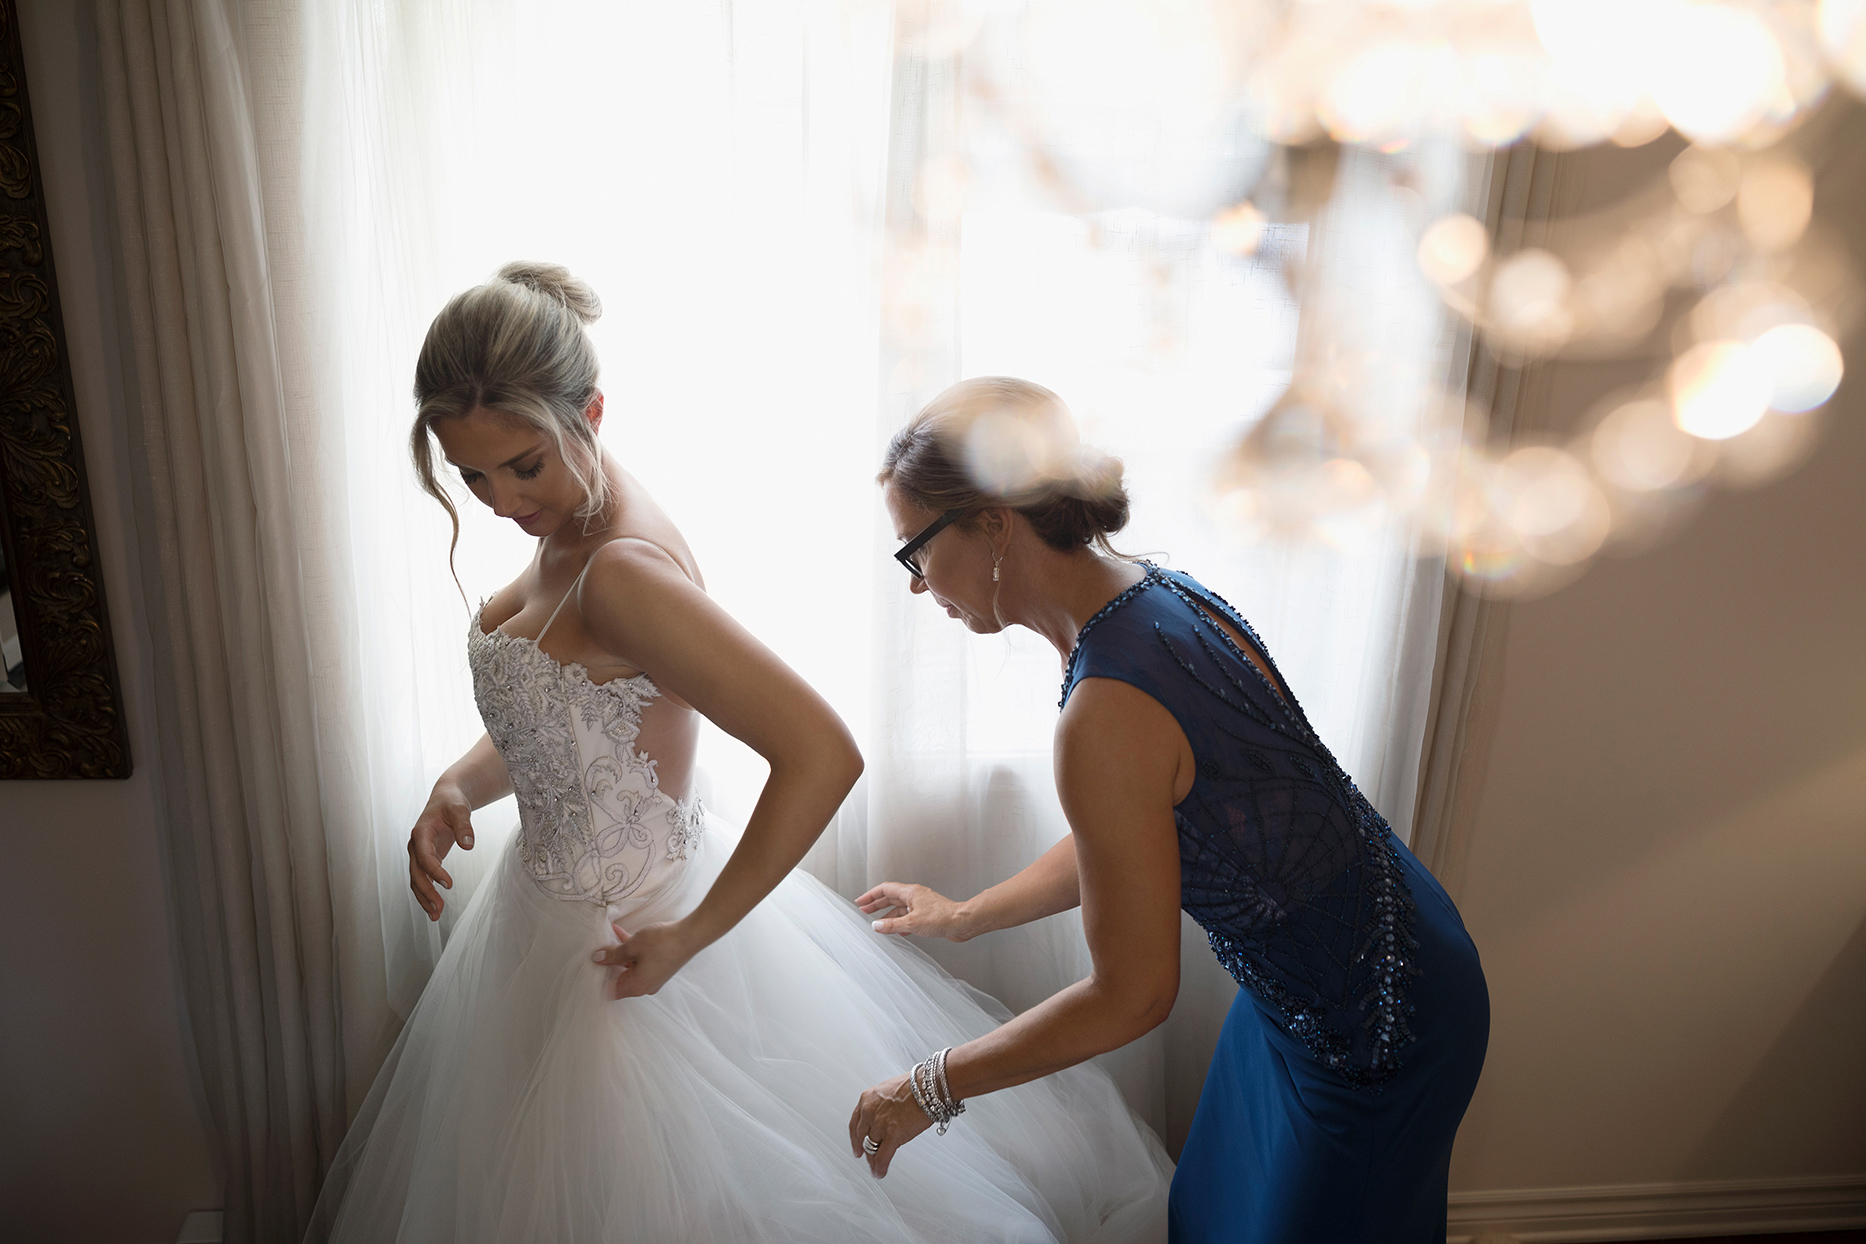 bride getting dressed with help of her mother on wedding day